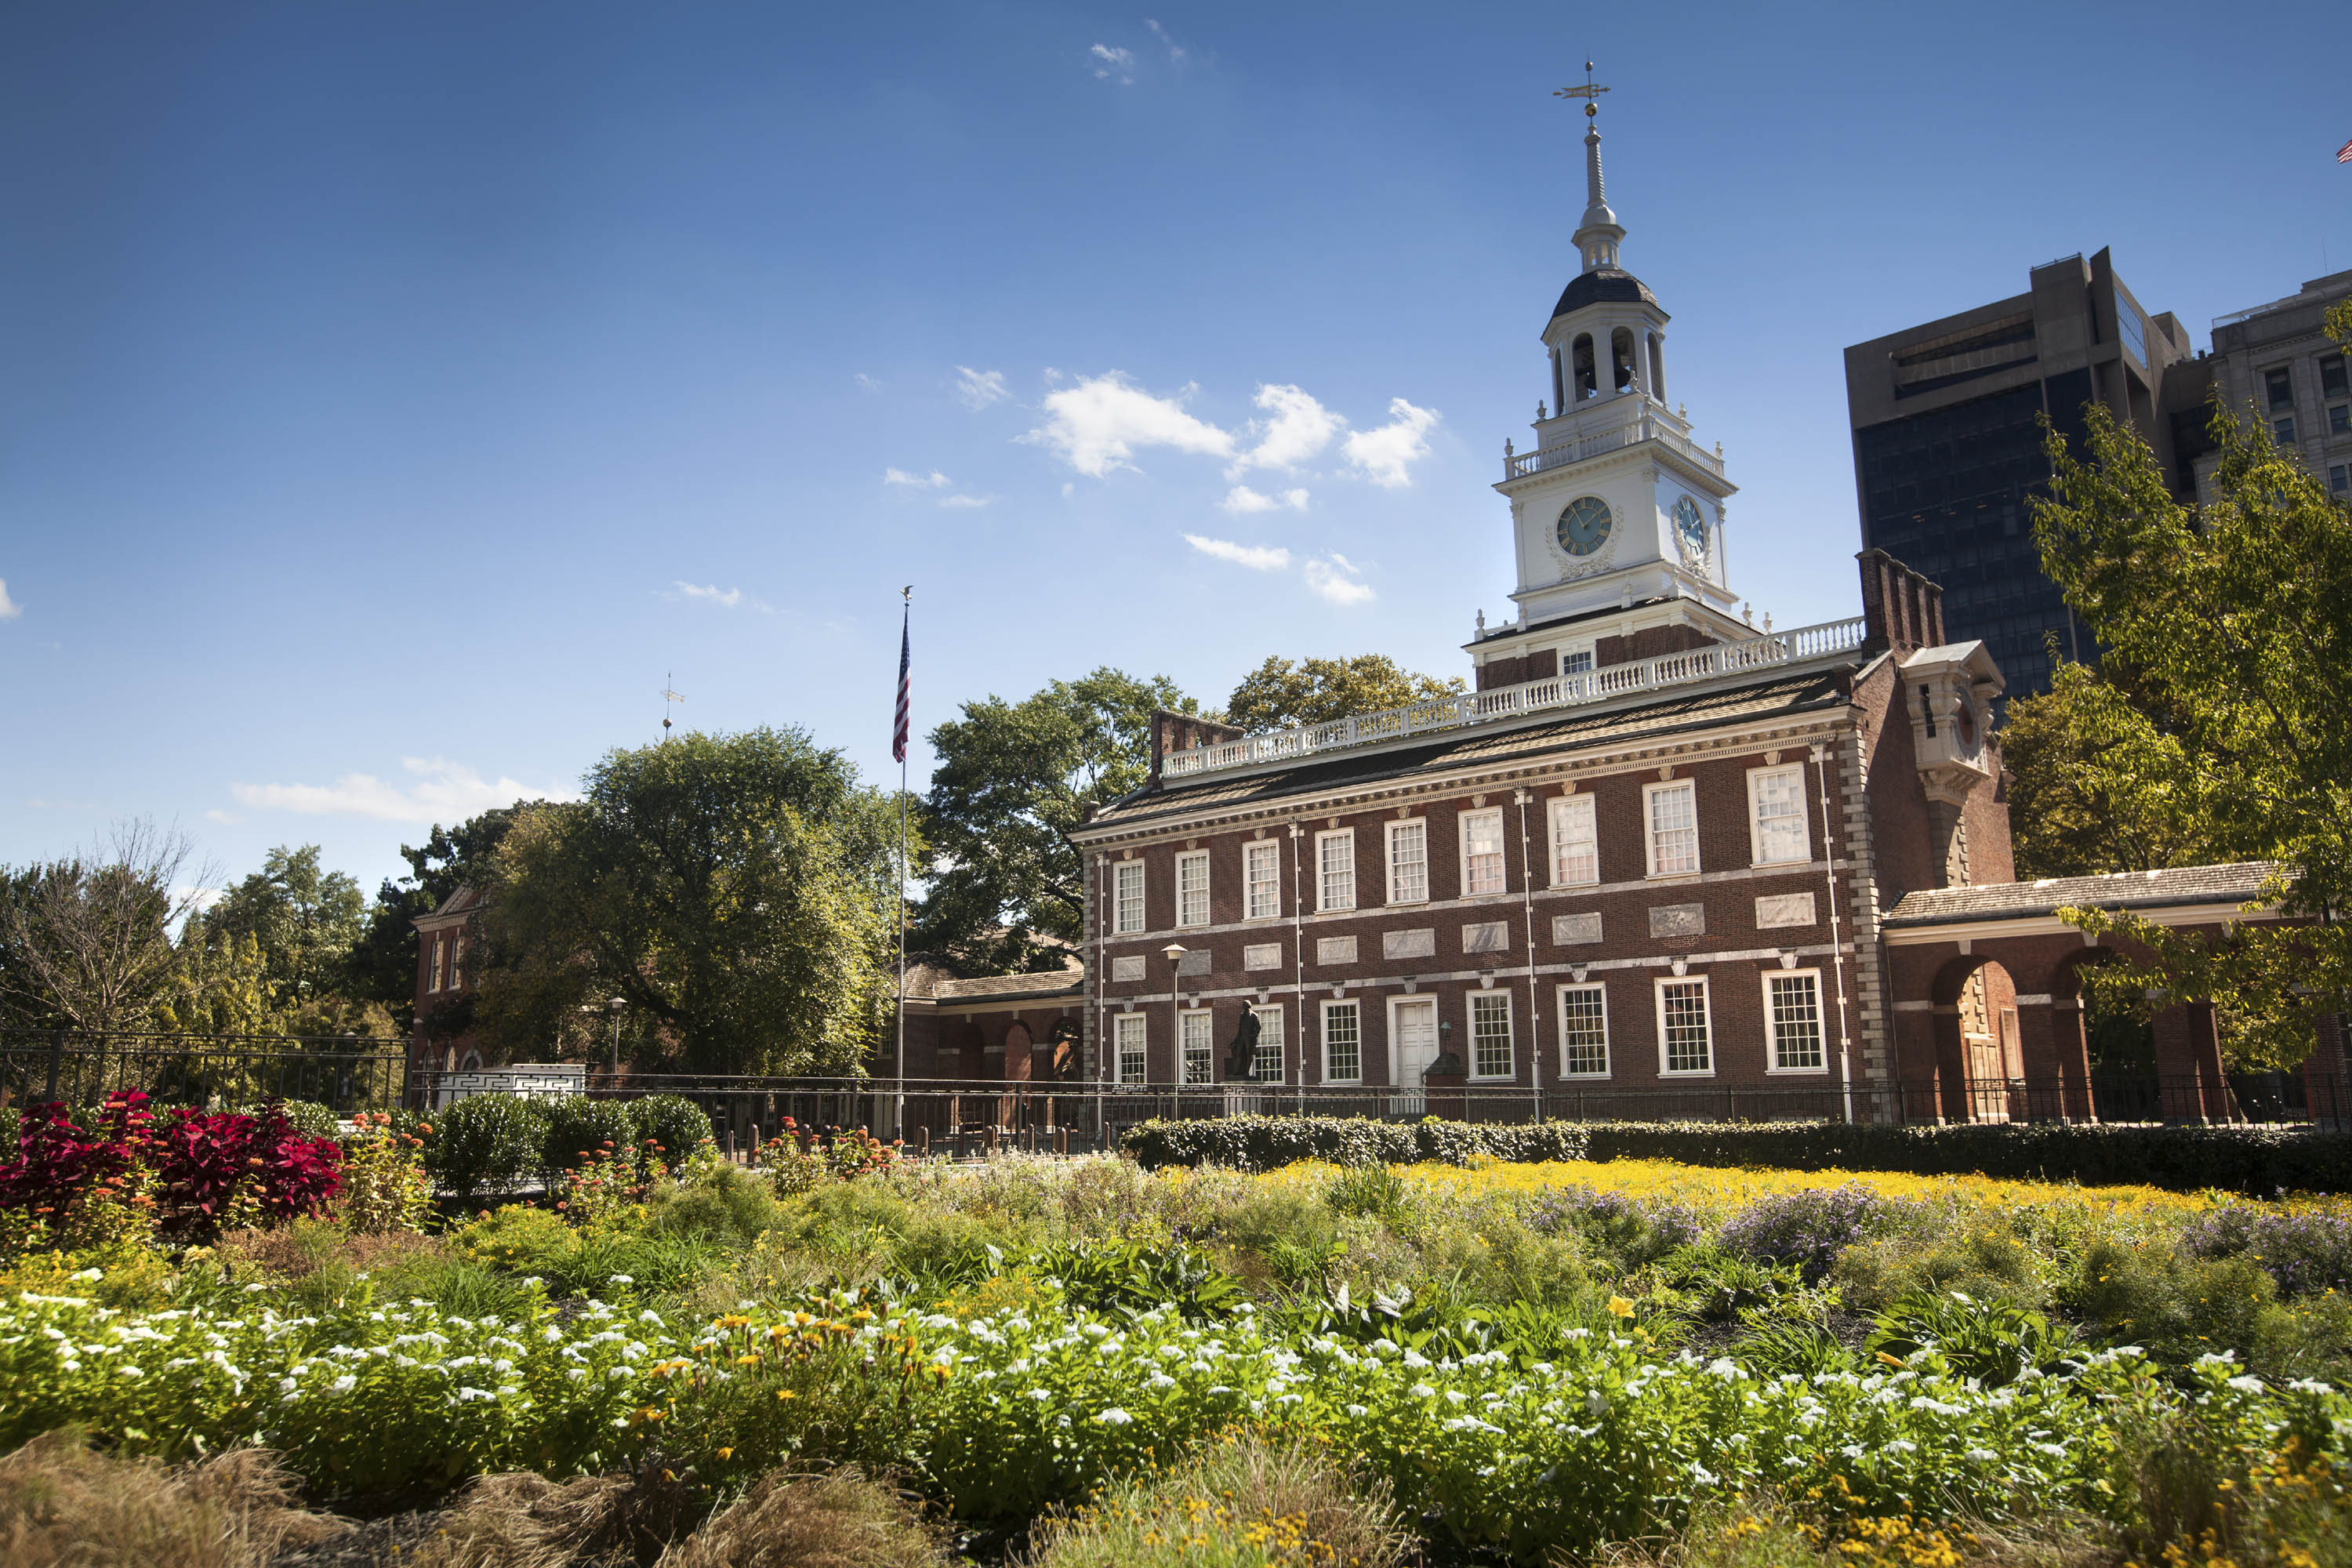 Tours to Independence Hall in Philadelphia